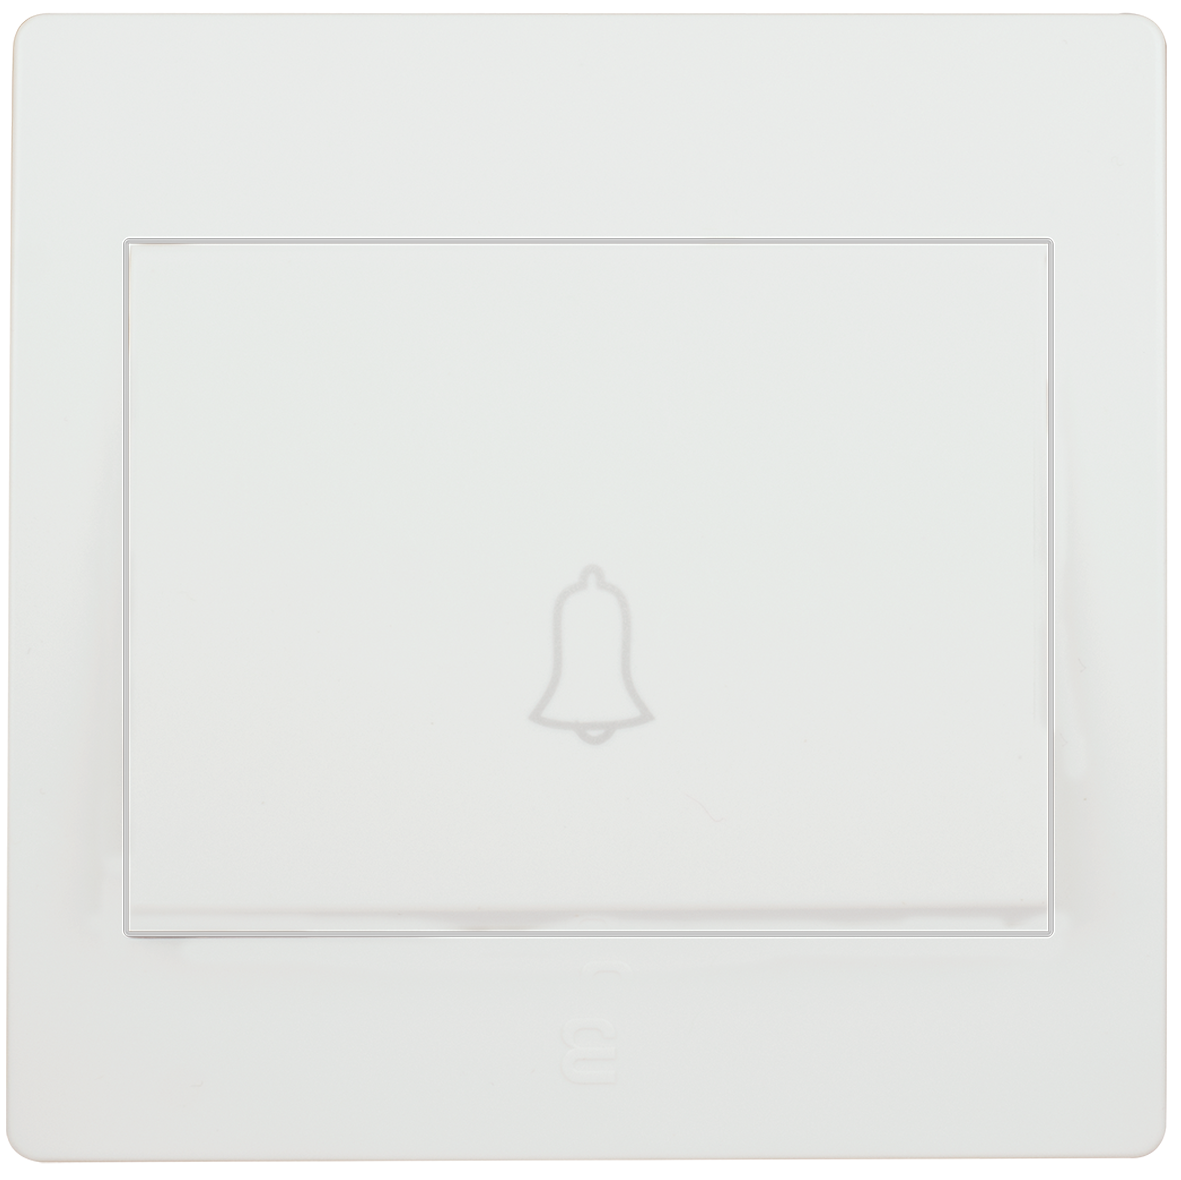 Doorbell switch with bell icon 16A 7x7